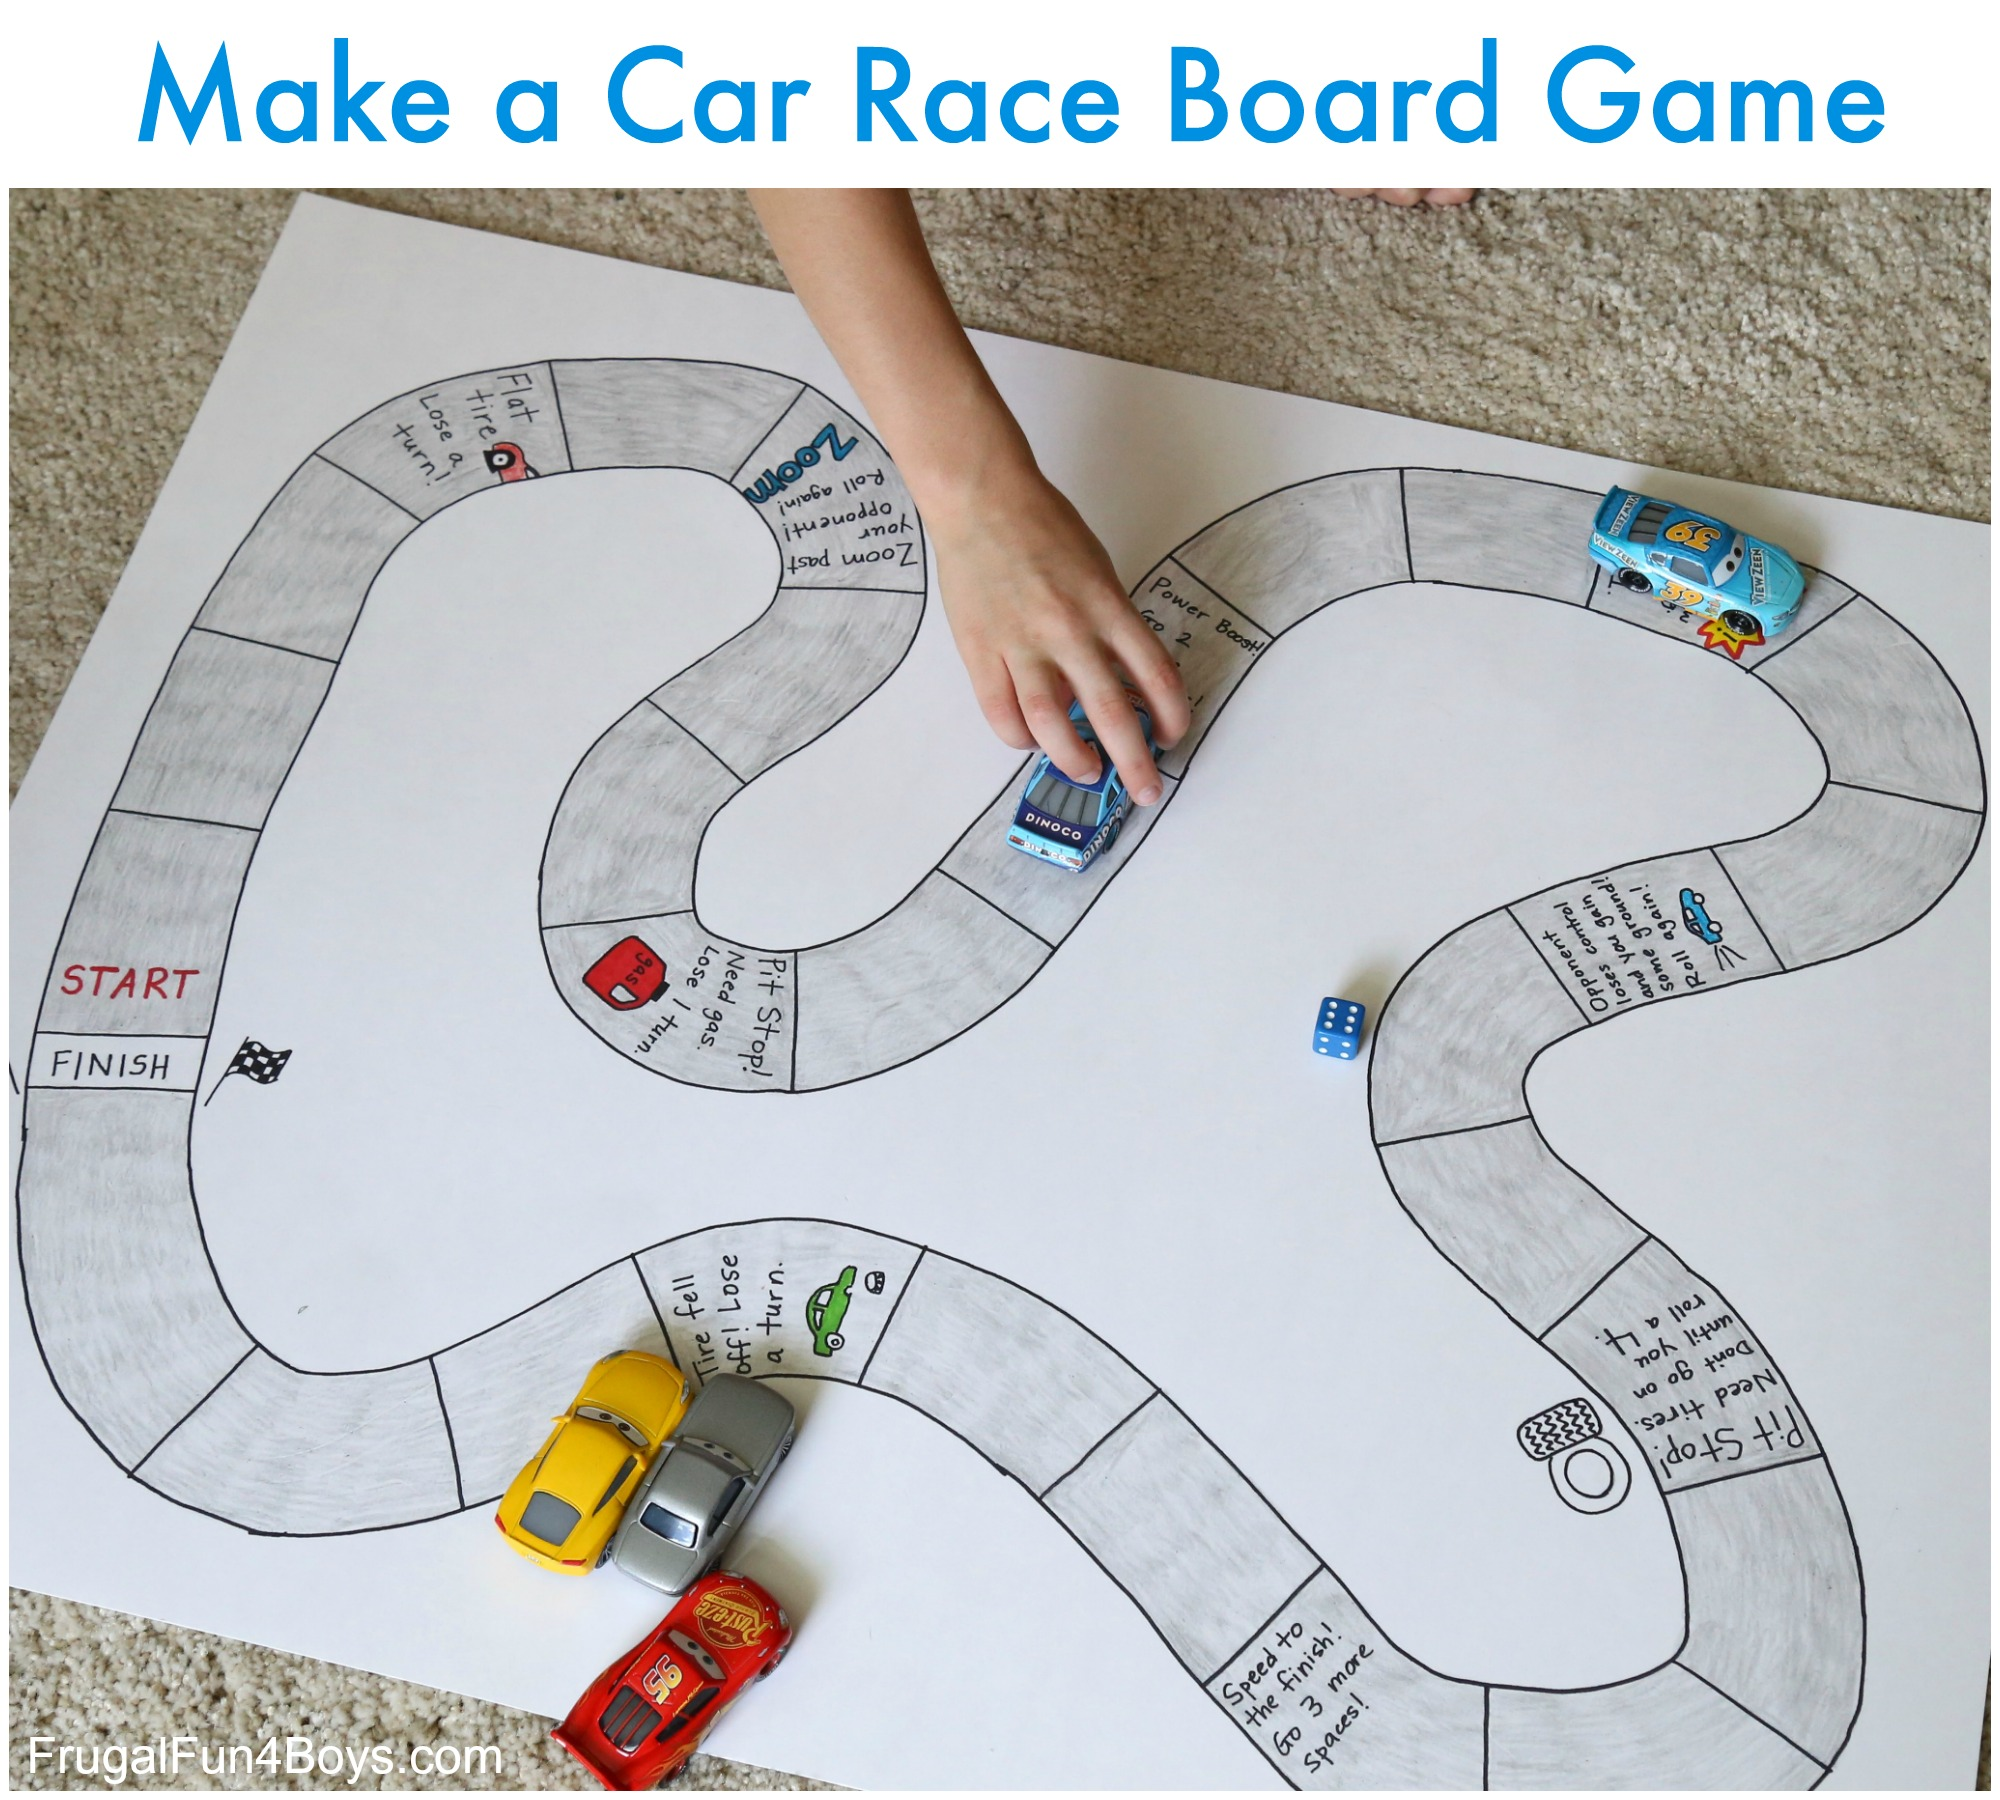 Make Your Own Car Race Board Game